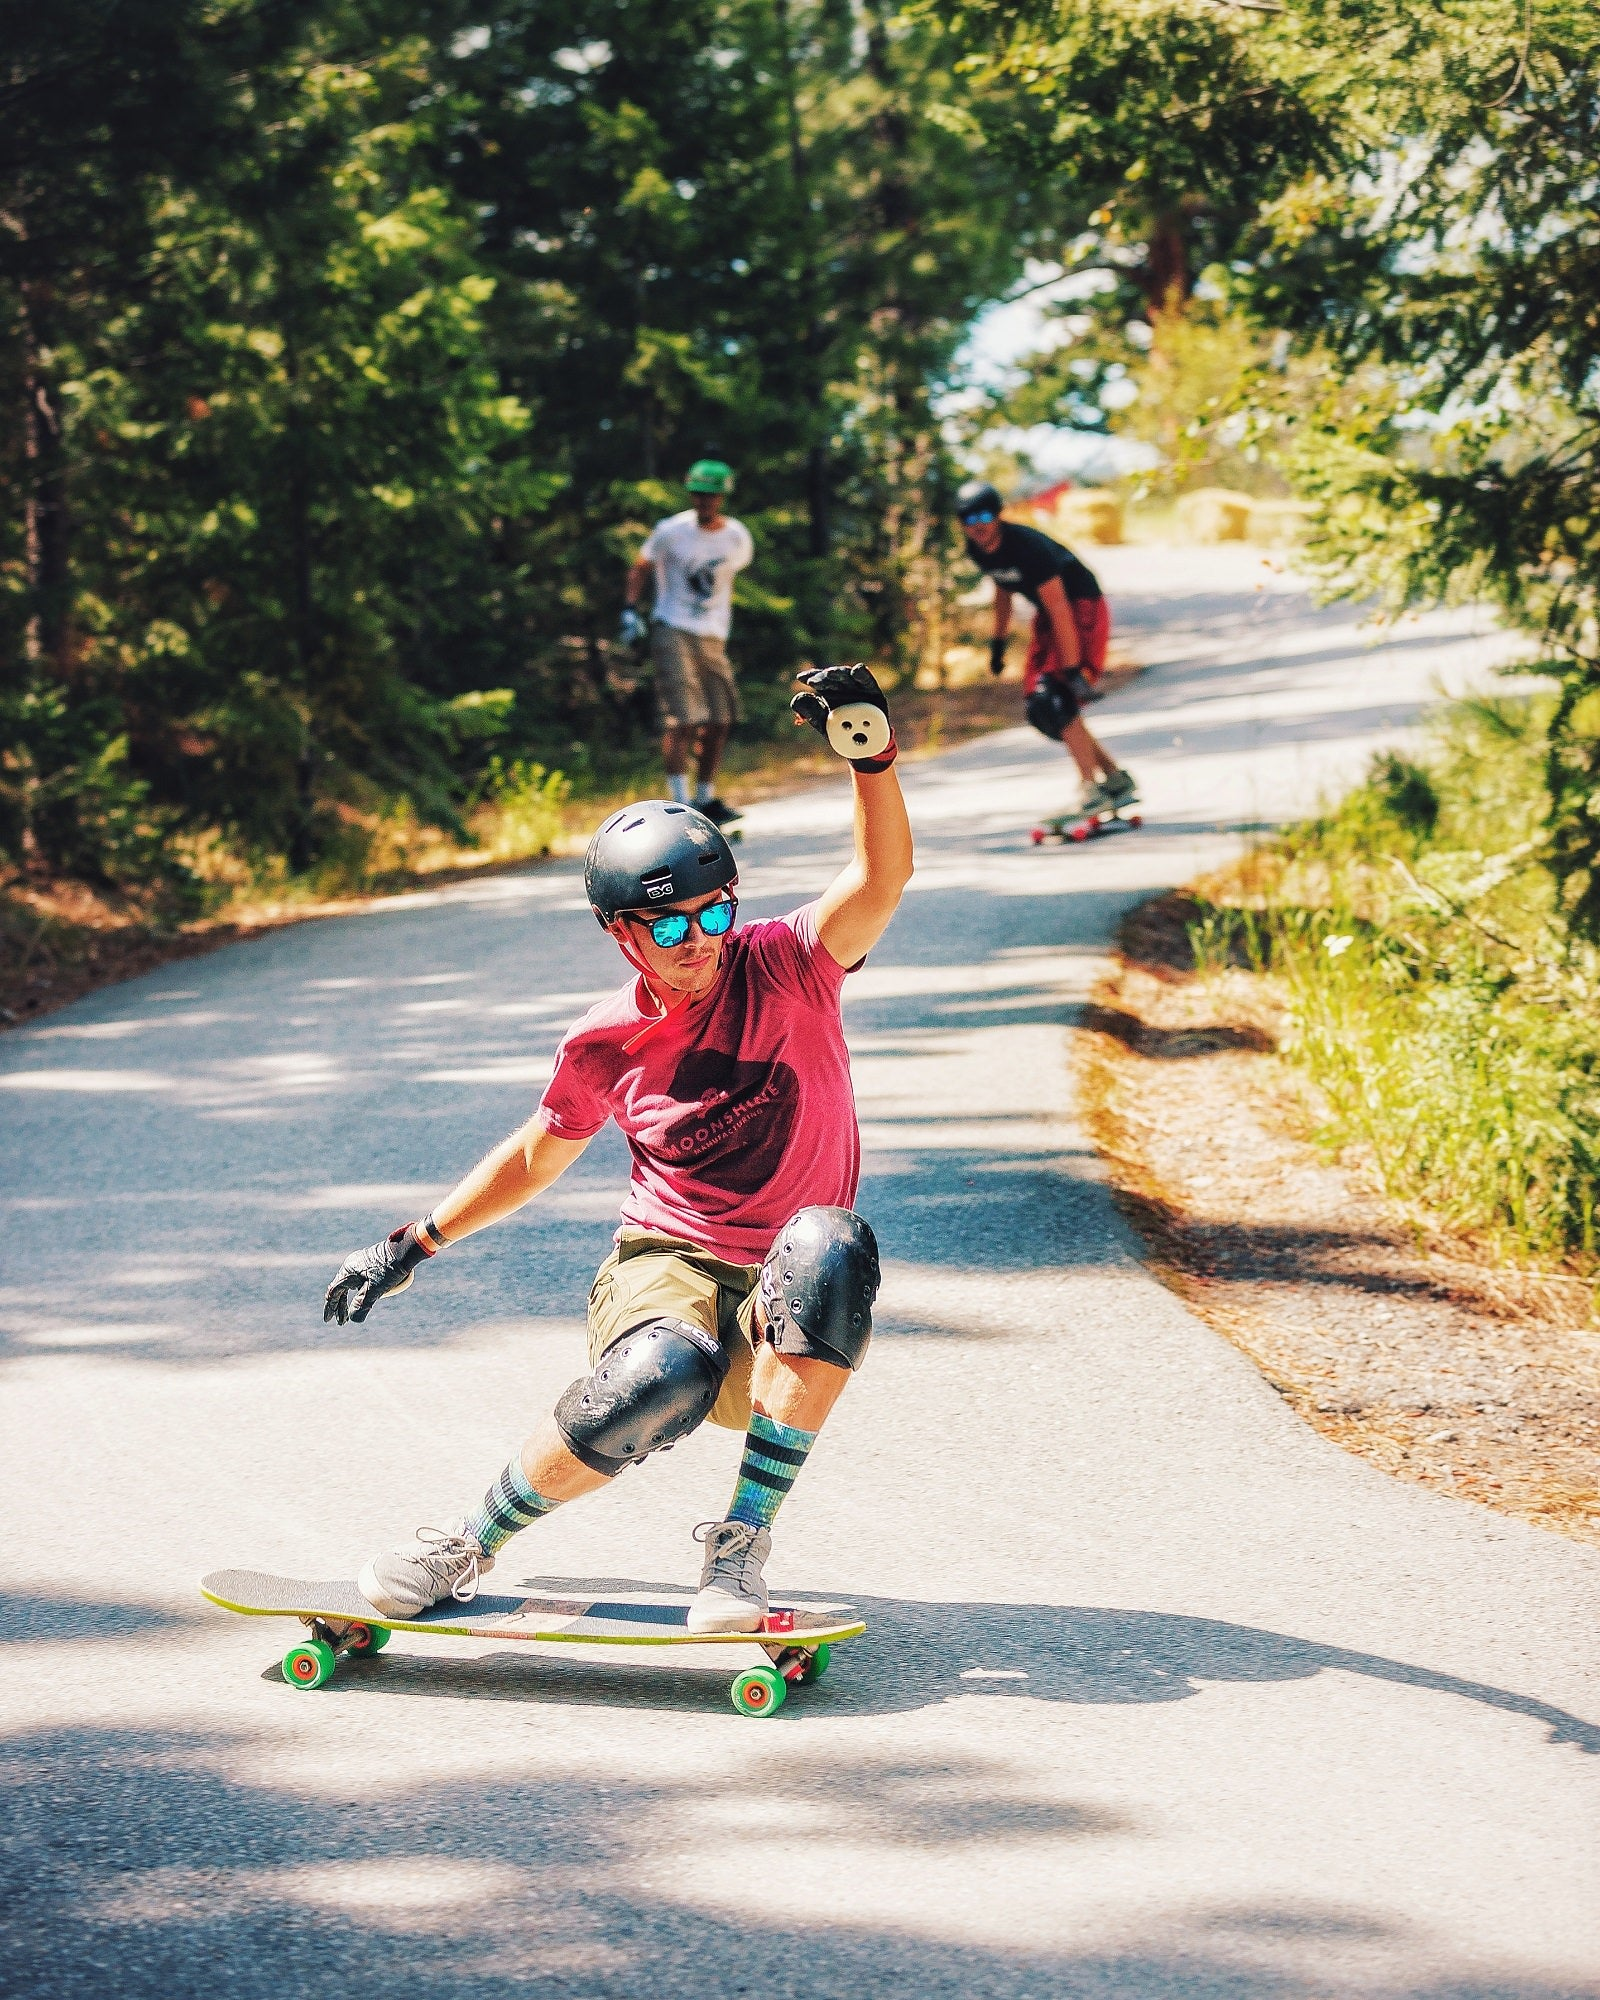 Brandon DesJarlais also Skates for Moonshine Longboards